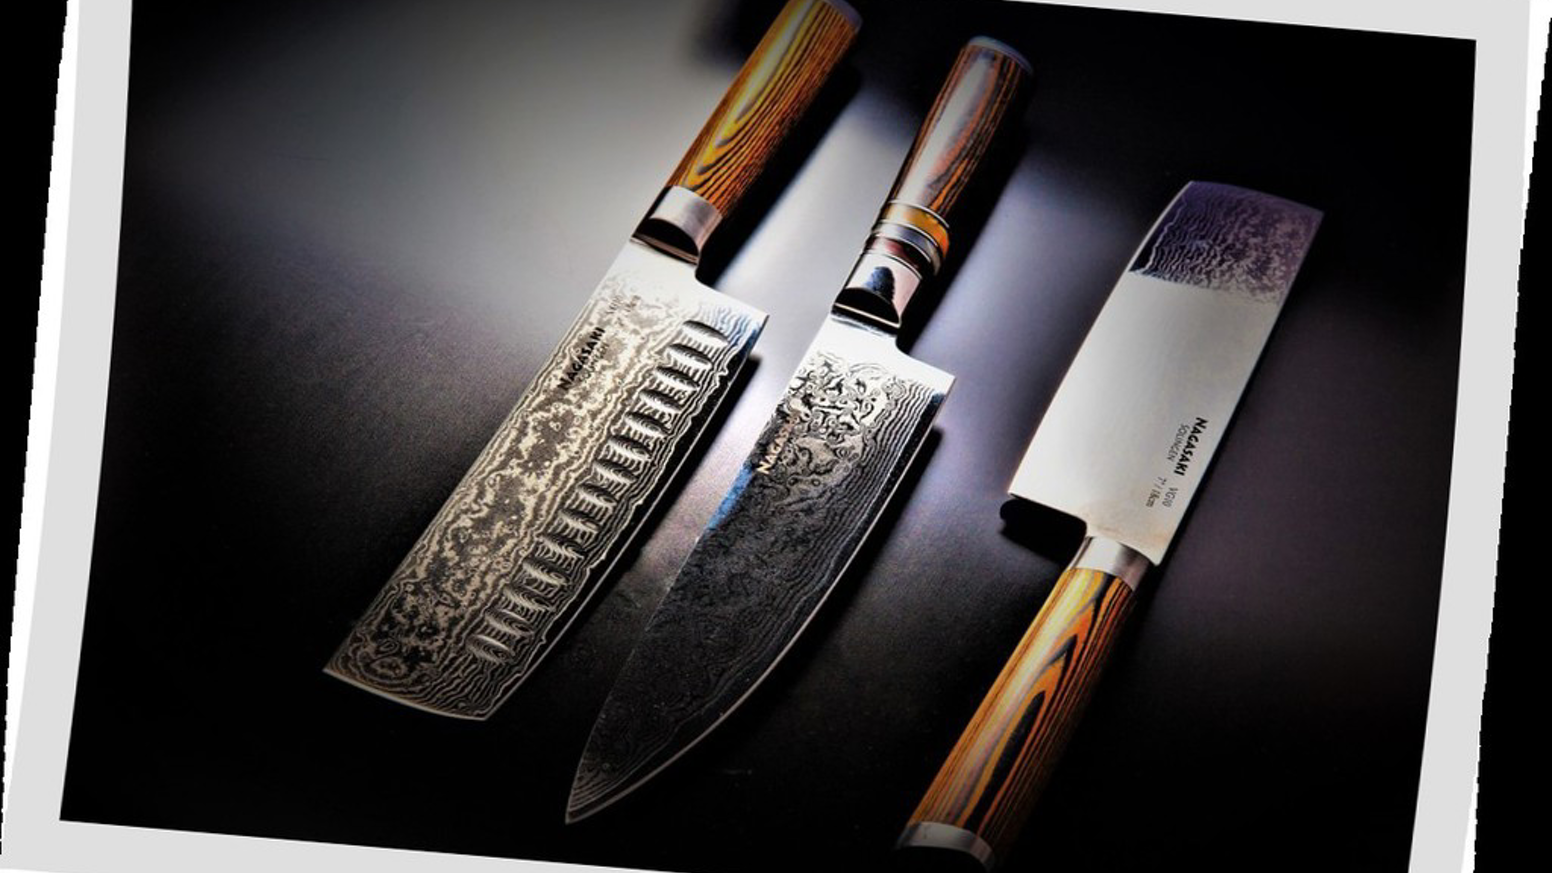 Nagasaki: A unique design of Japanese & German craftsmanship with VG-10 Steel core with 67 layers of damascus.